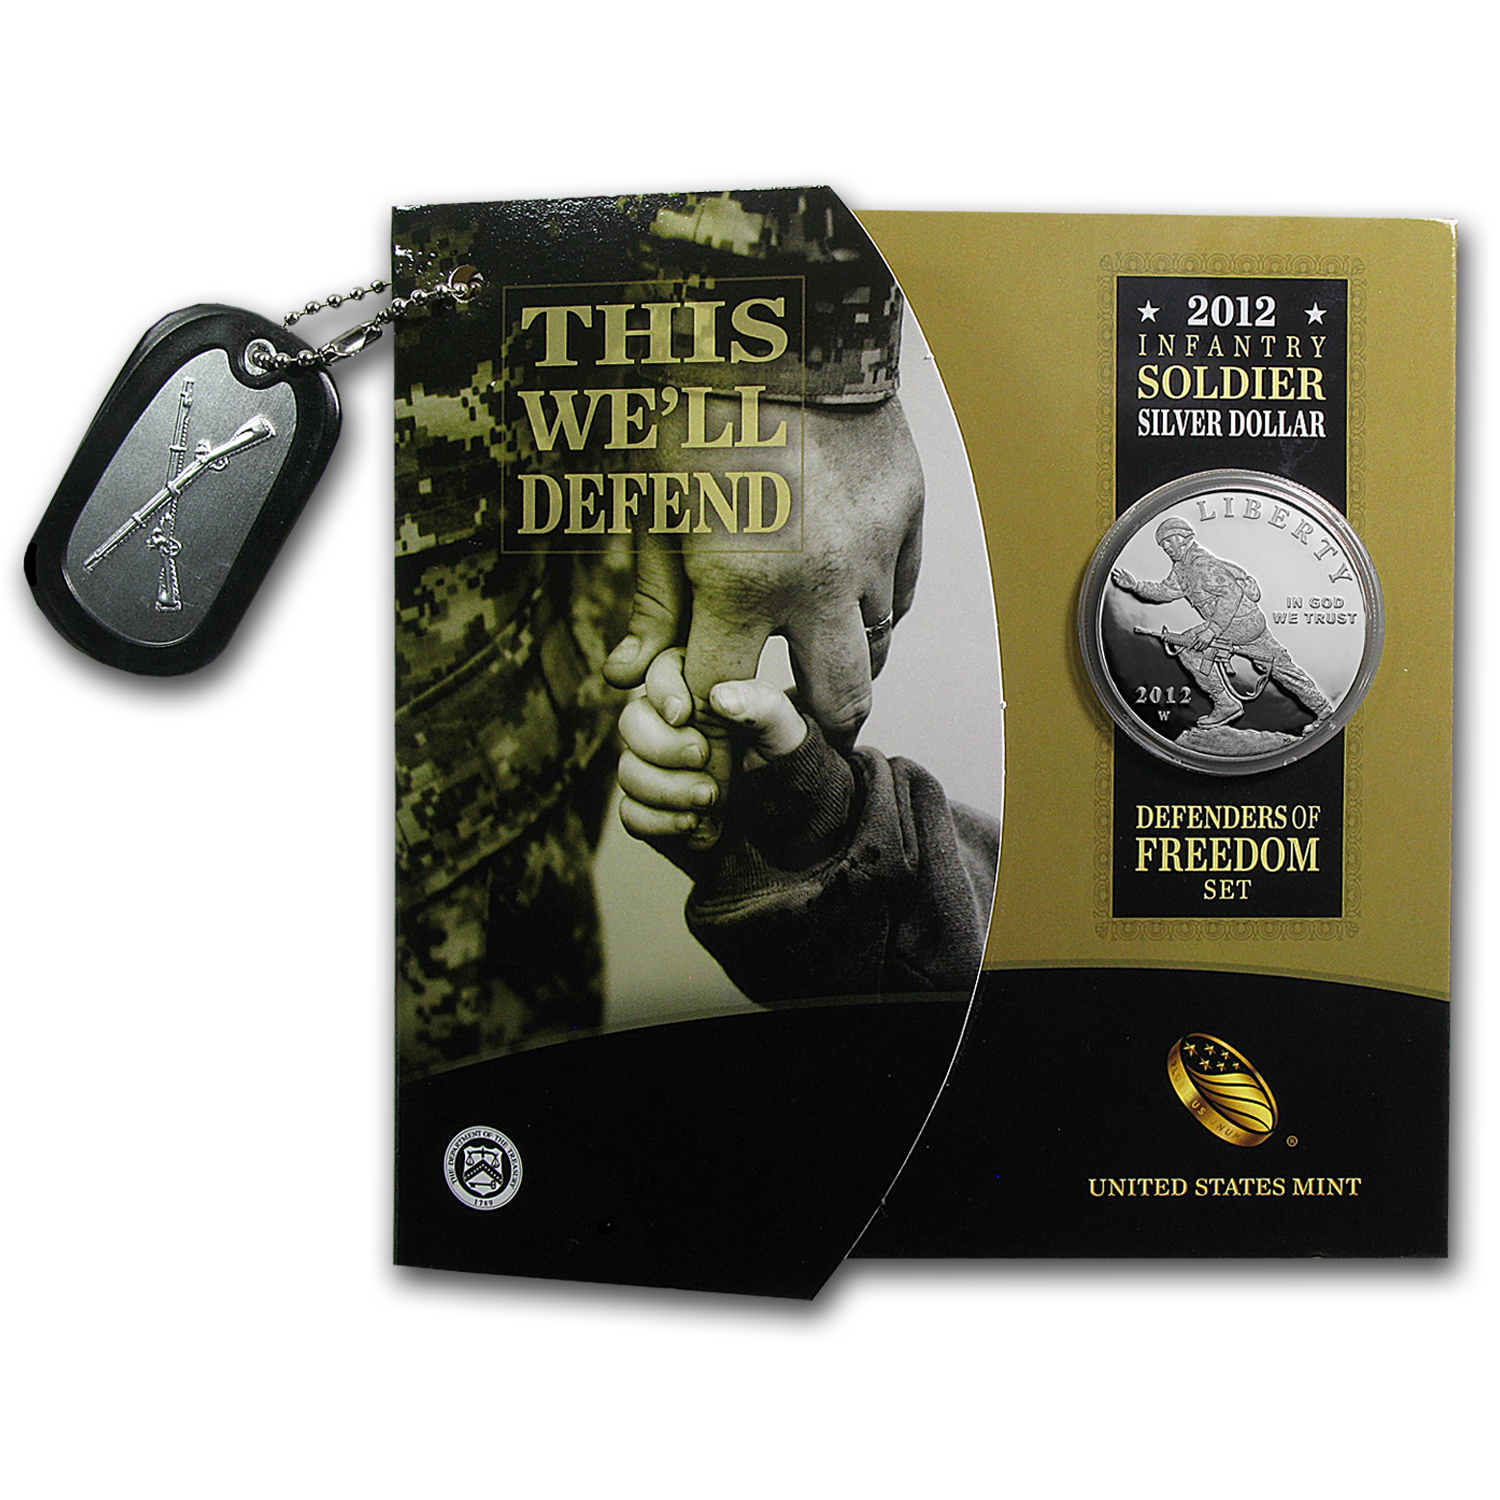 2012 Infantry Soldier Defenders of Freedom $1 Silver Commem Set